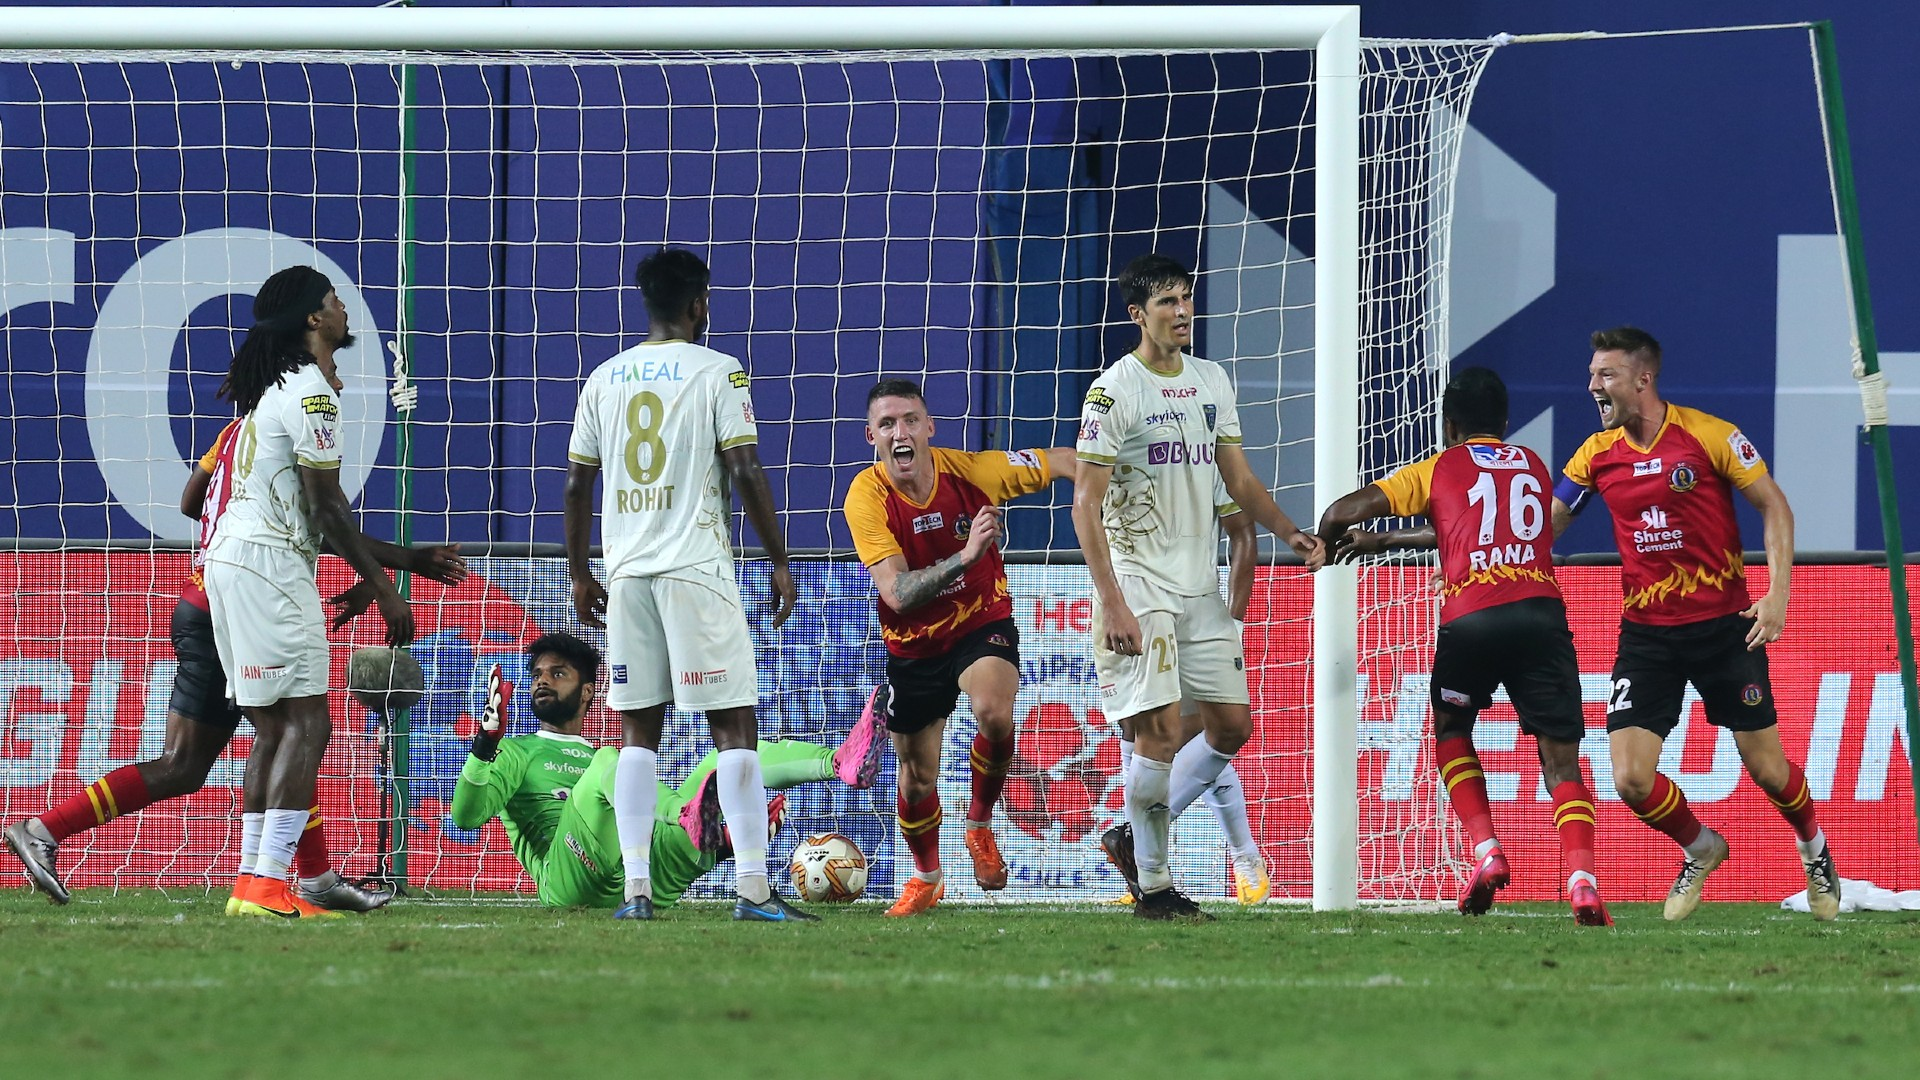 ISL 2020-21: East Bengal and Kerala Blasters have lost most number of points from winning position